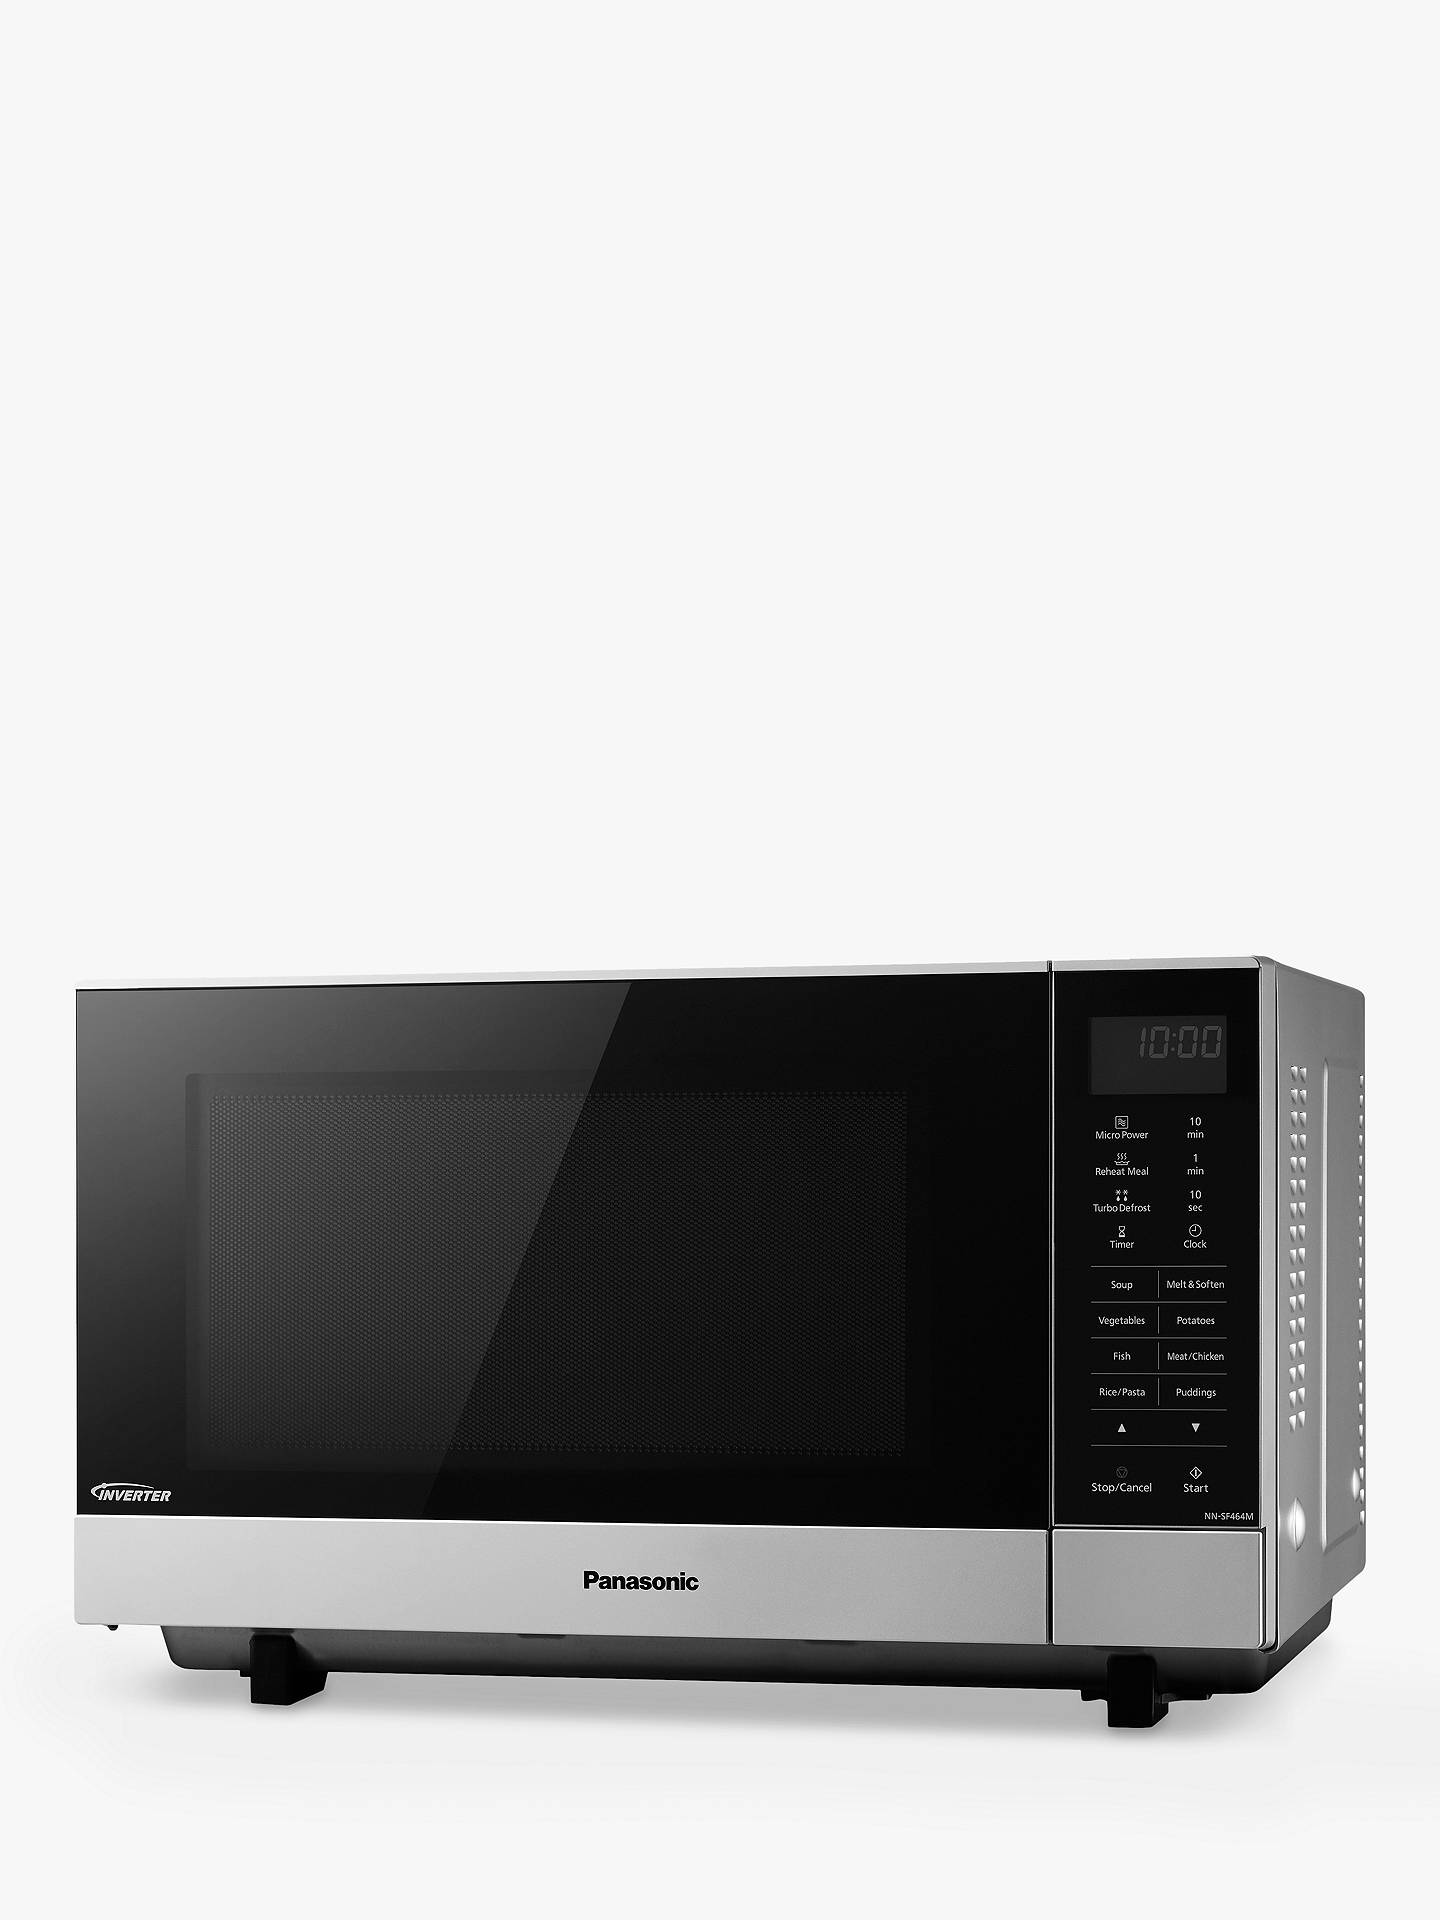 BuyPanasonic NN-SF464MBPQ Microwave, Silver Online at johnlewis.com